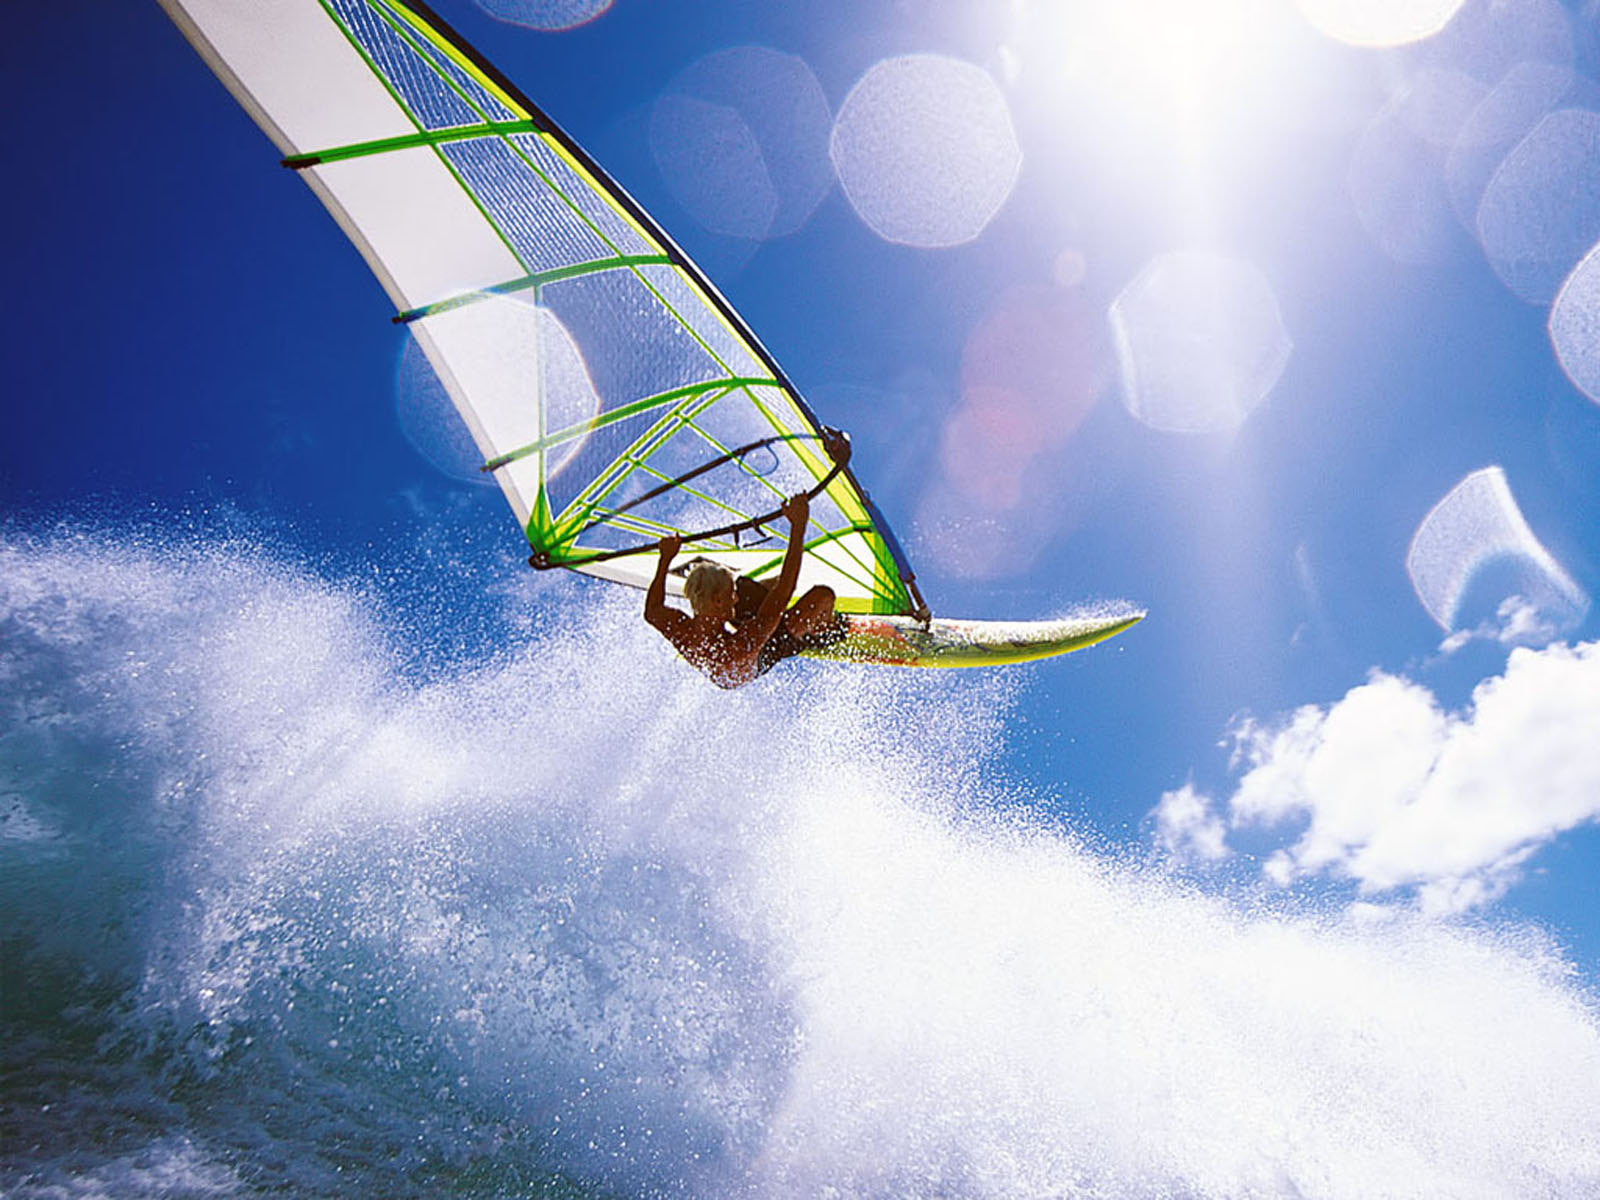 sports wallpaper surfing - photo #28